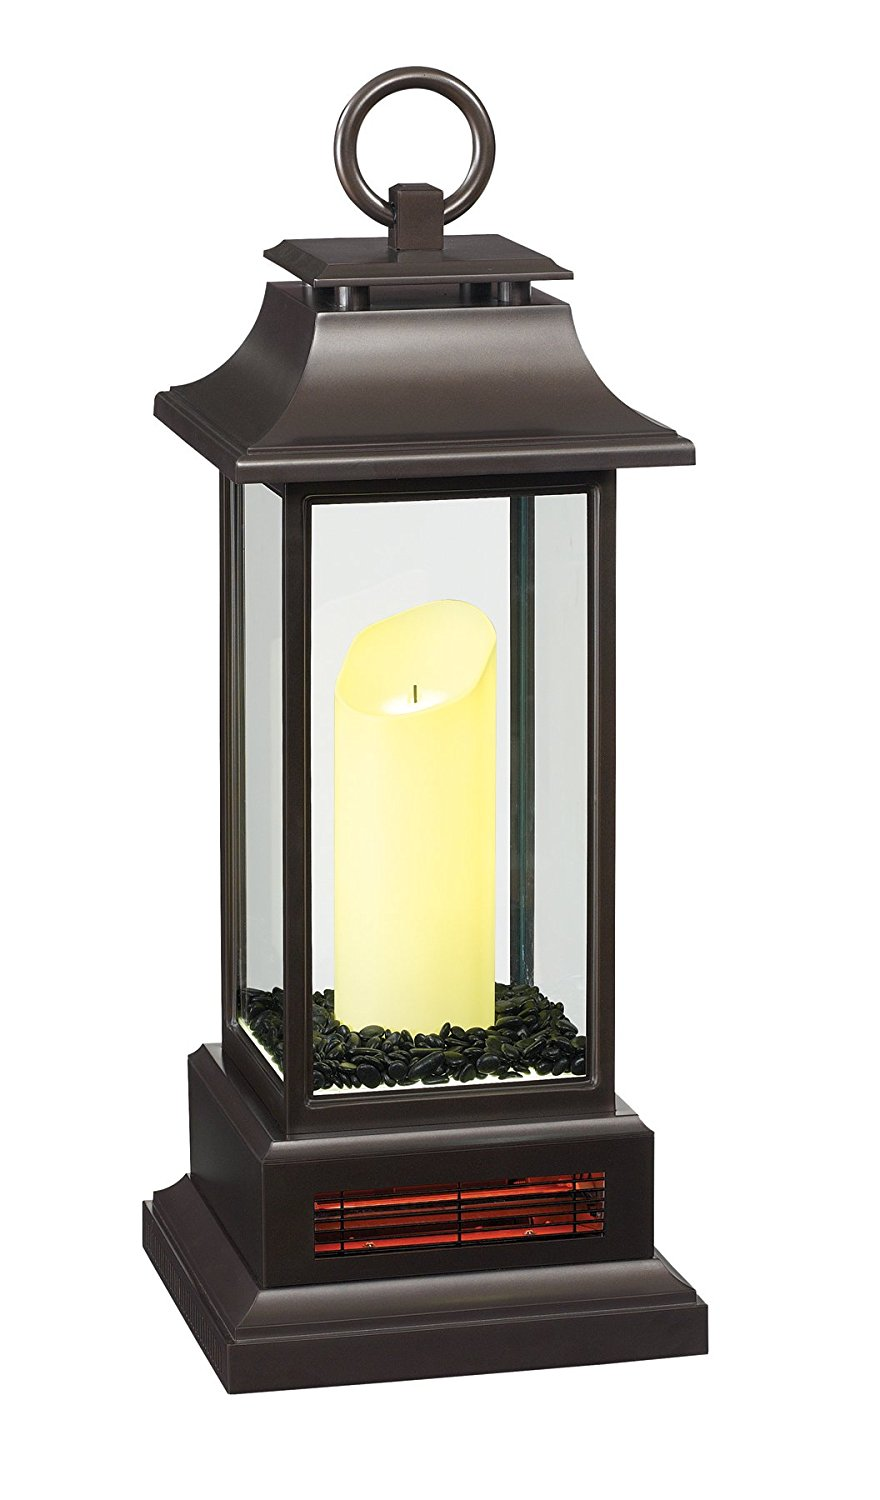 """Portable Electric Radiant Floor Heating For Under Area: Duraflame 10ILH10001 27"""" Portable LED Electric Candle"""